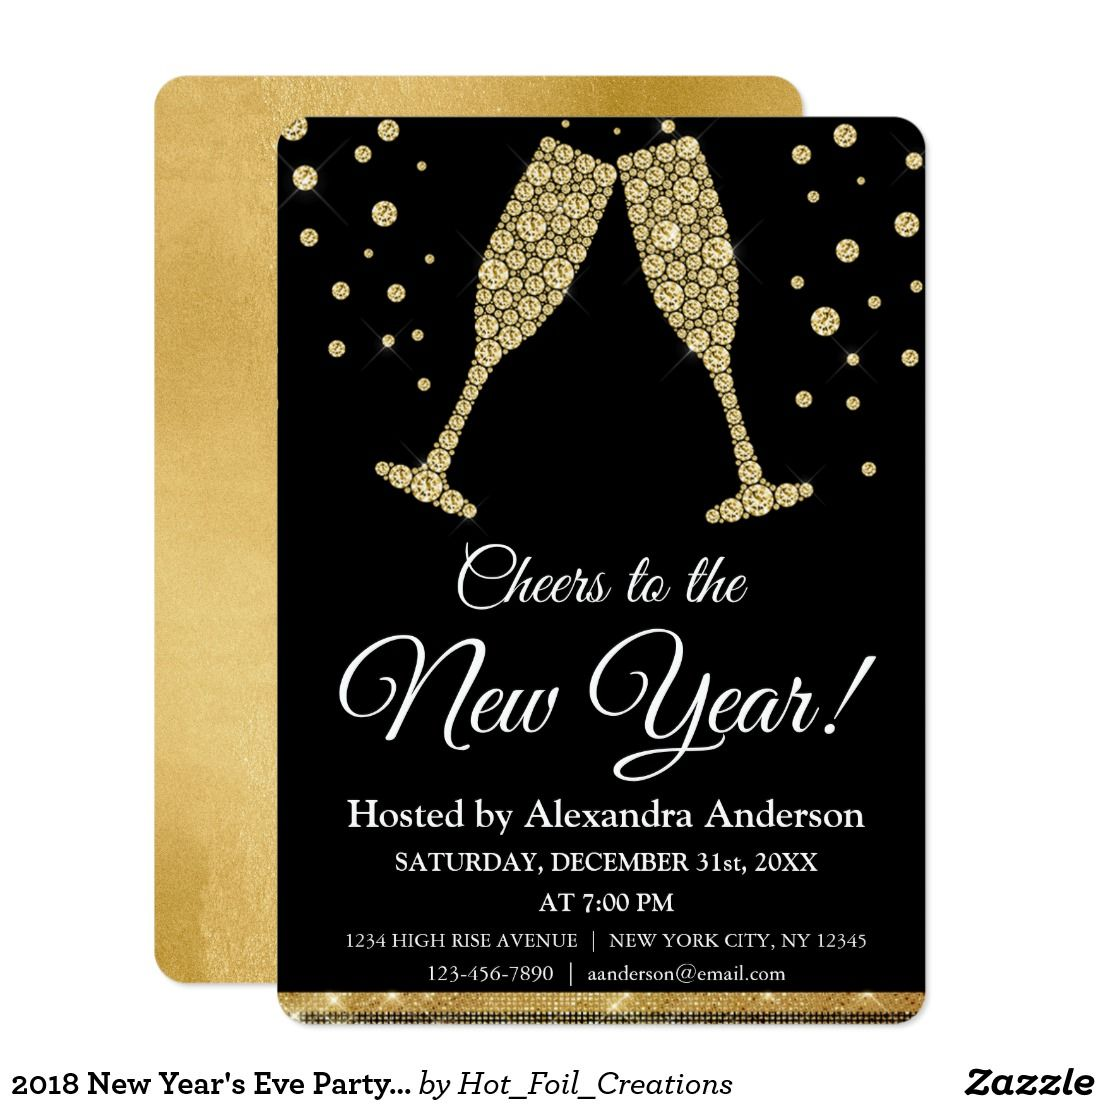 2020 New Year's Eve Party Champagne Glasses Invitation